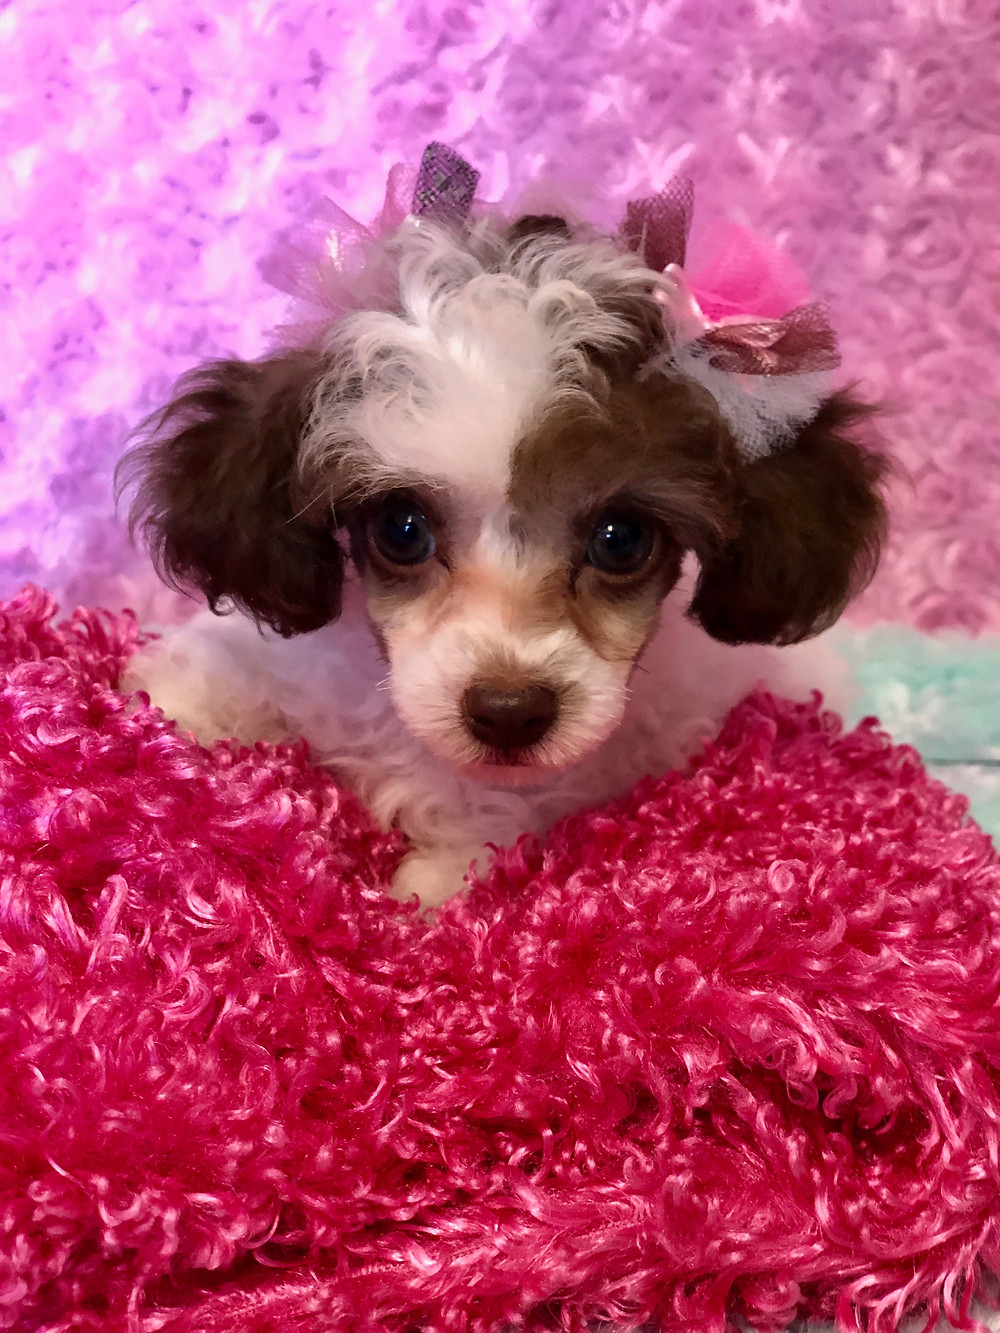 Teacup Poodle - Chocolate & White Parti Color